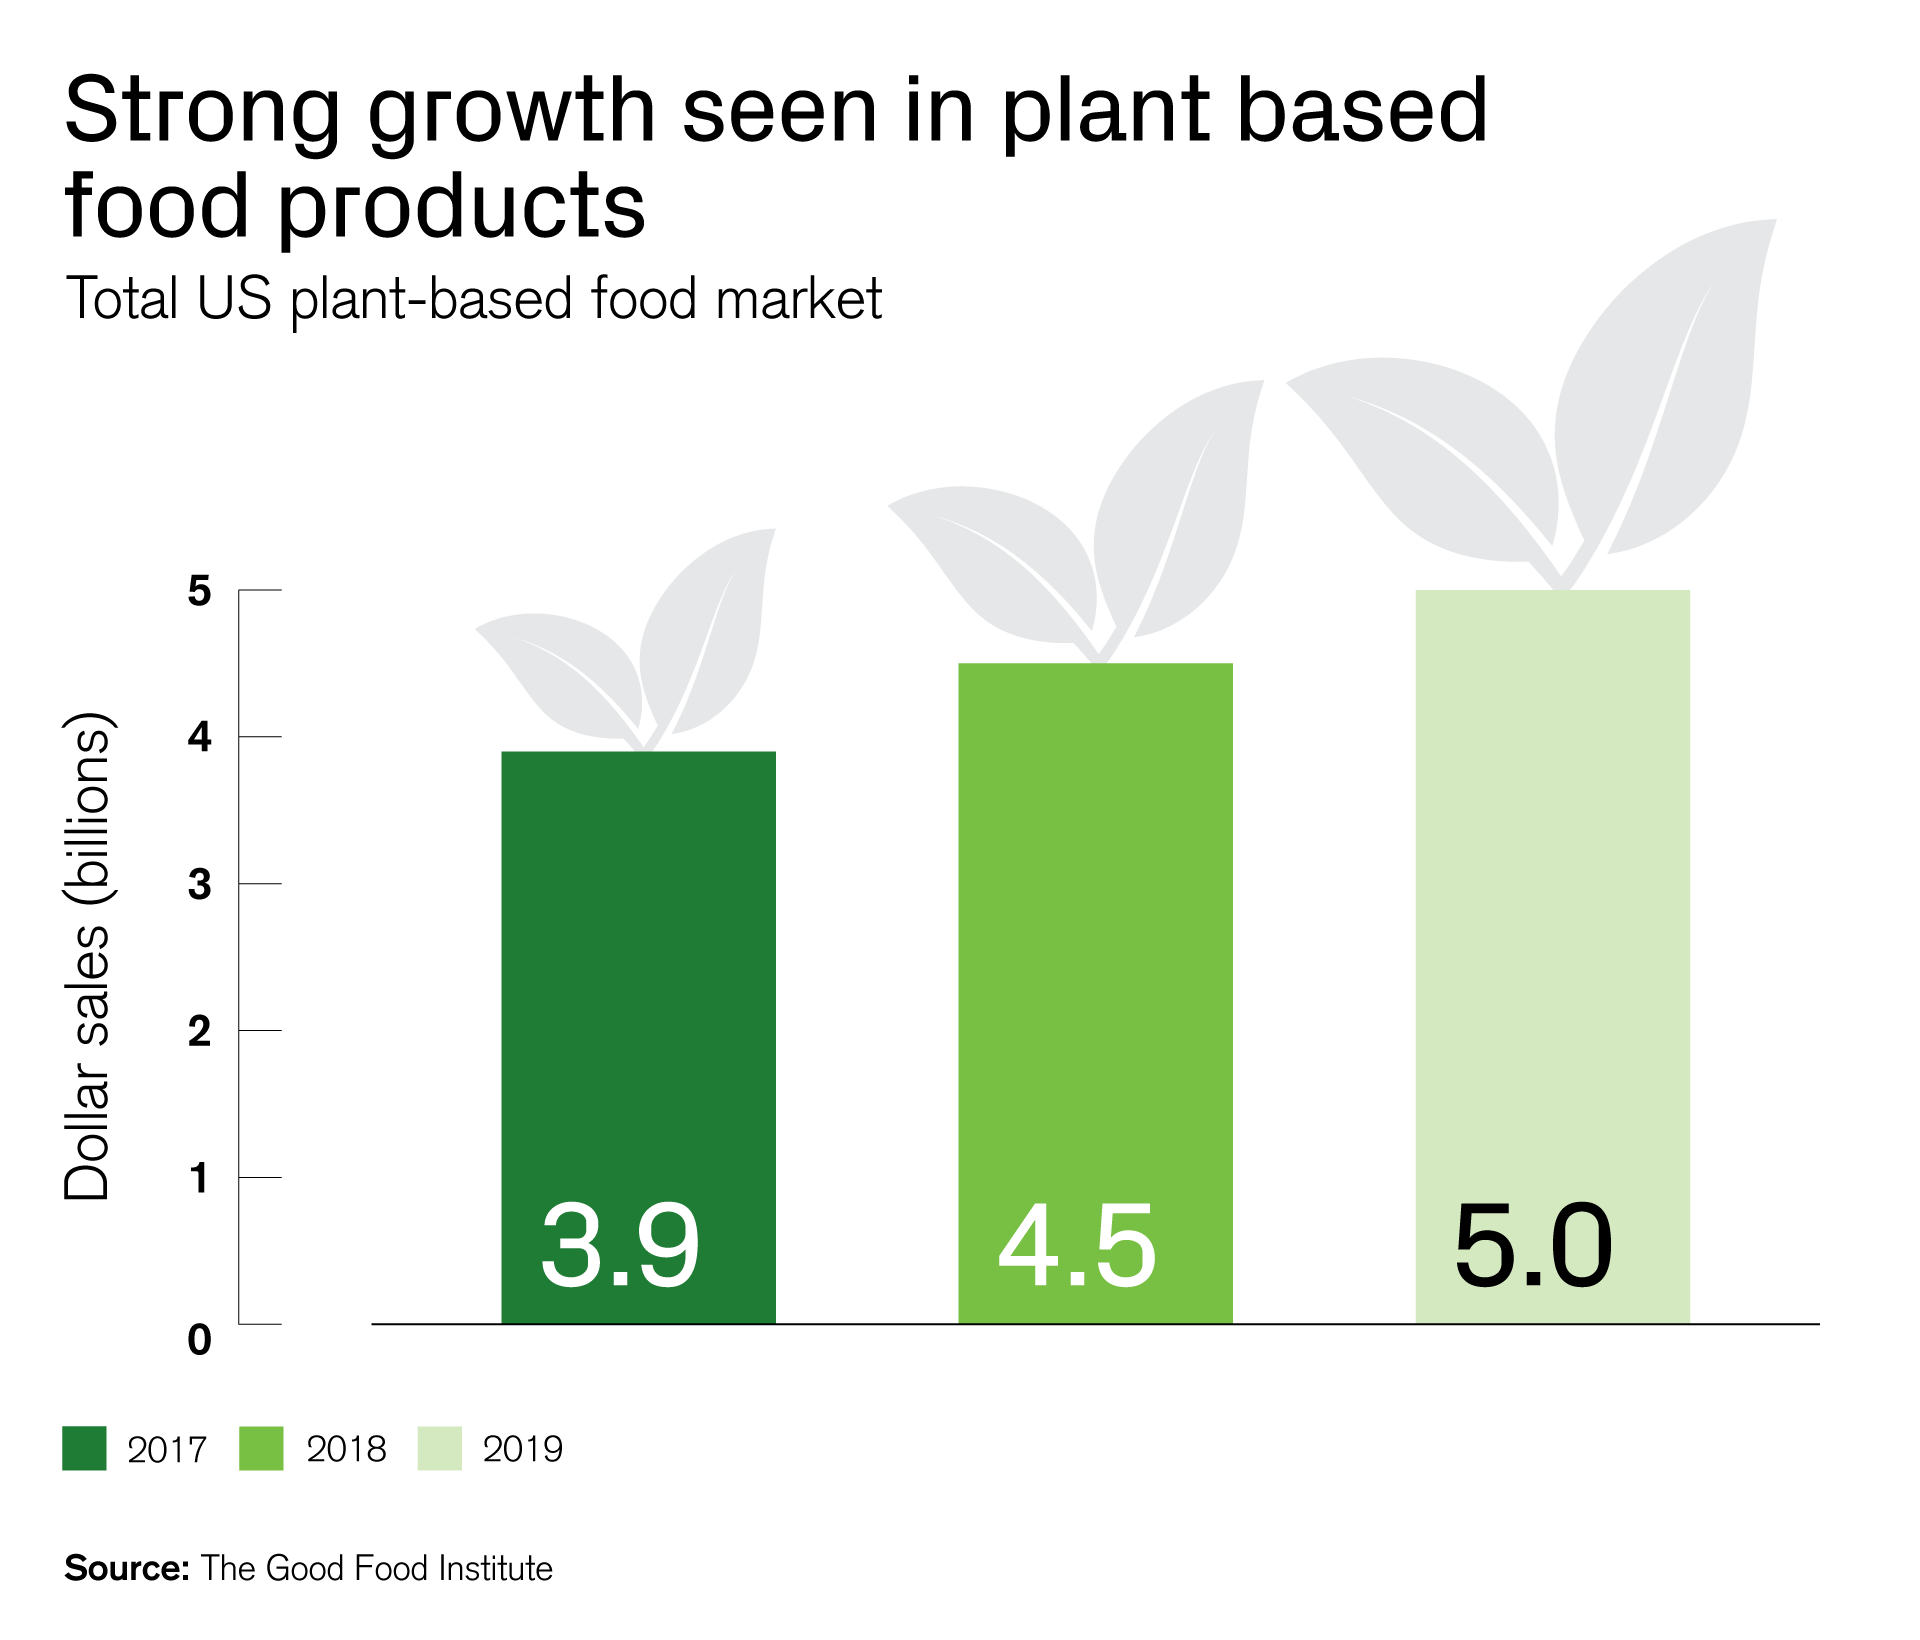 Strong growth seen in plant based food products